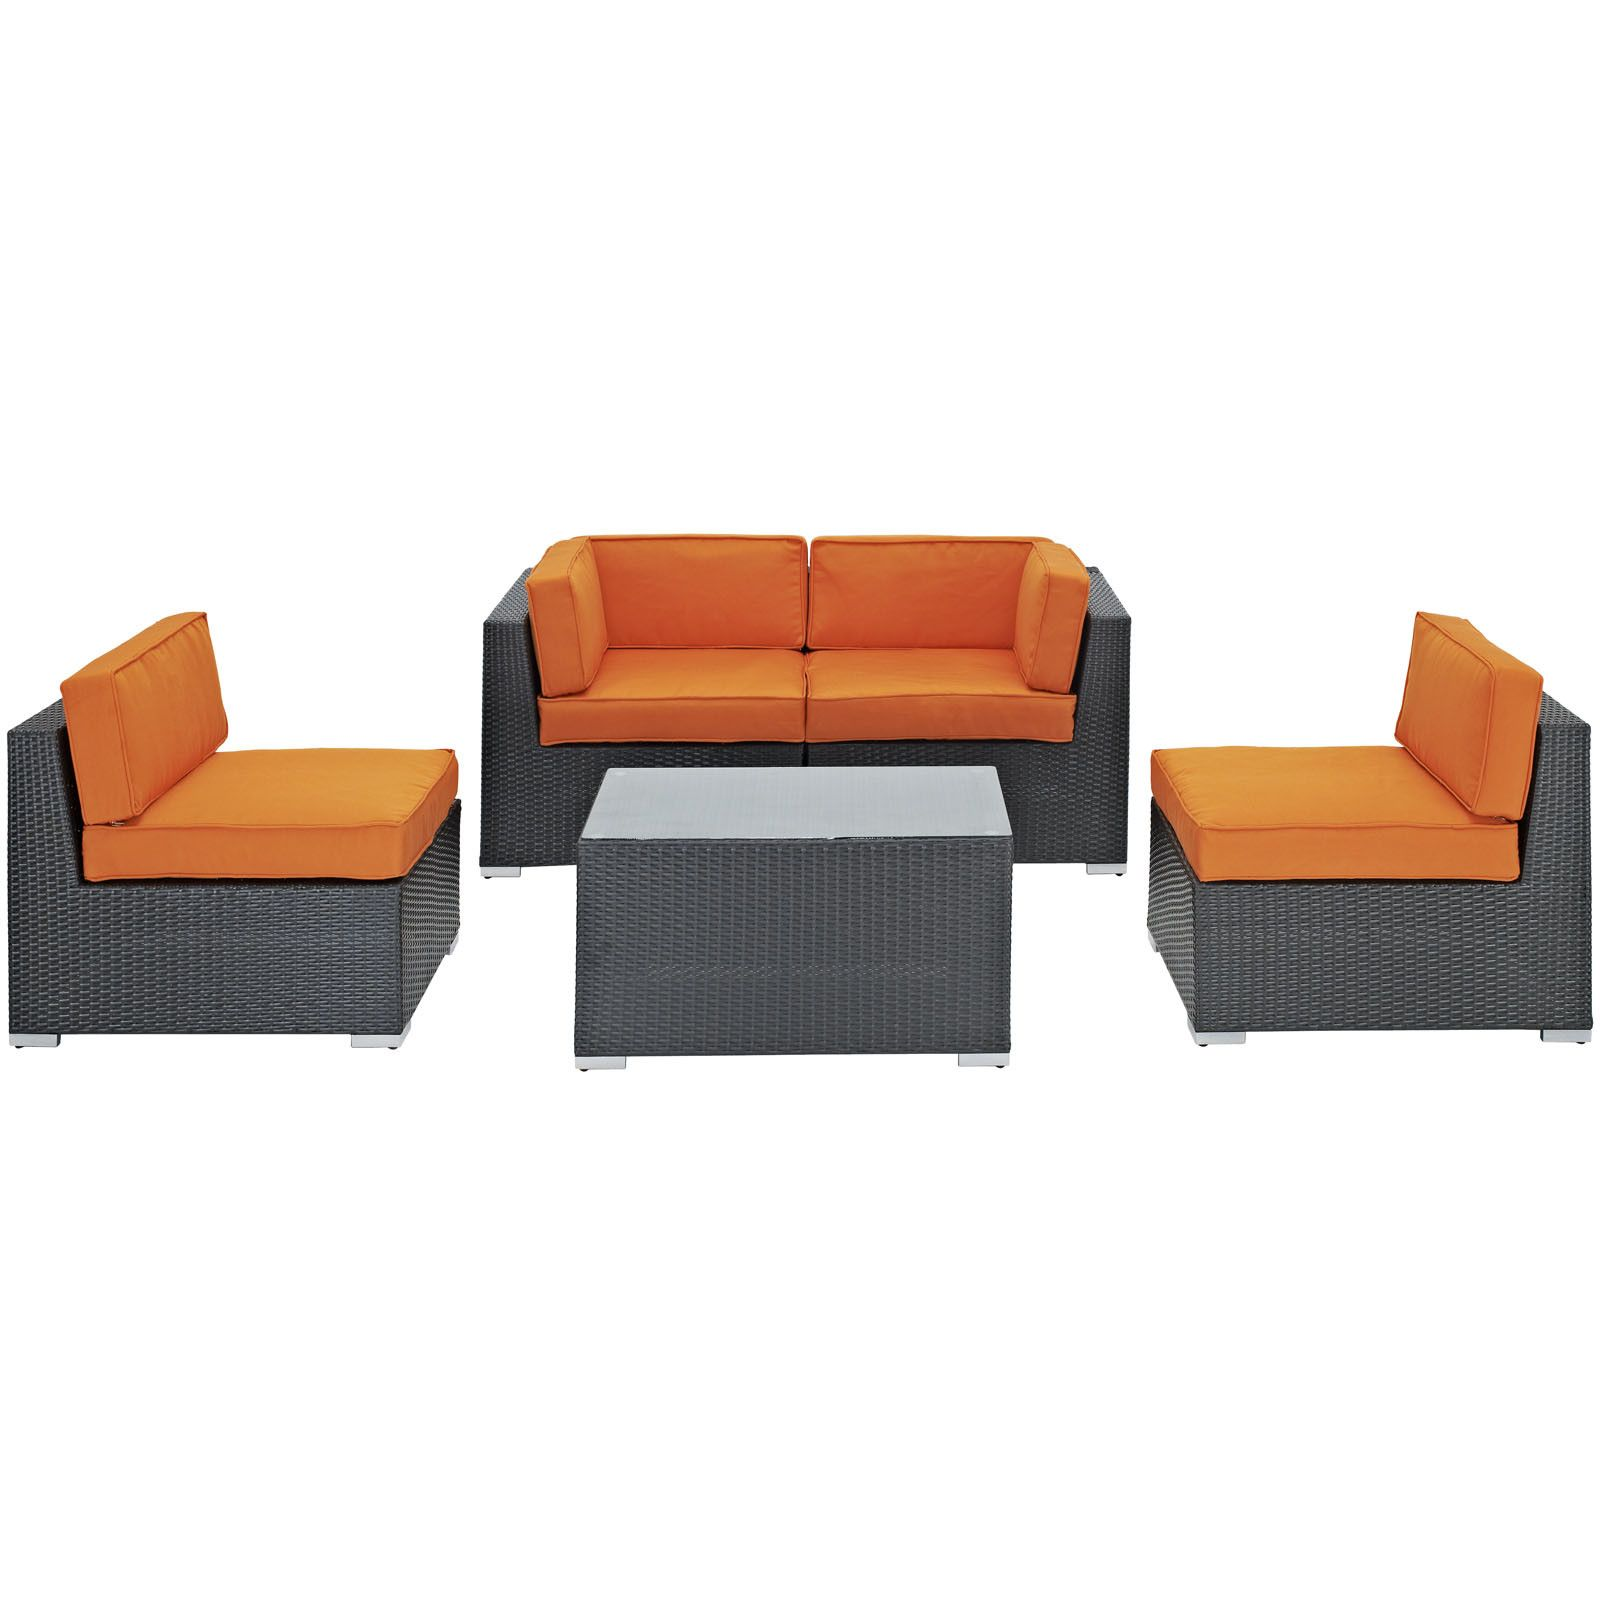 Camfora piece outdoor patio sectional set espresso orange